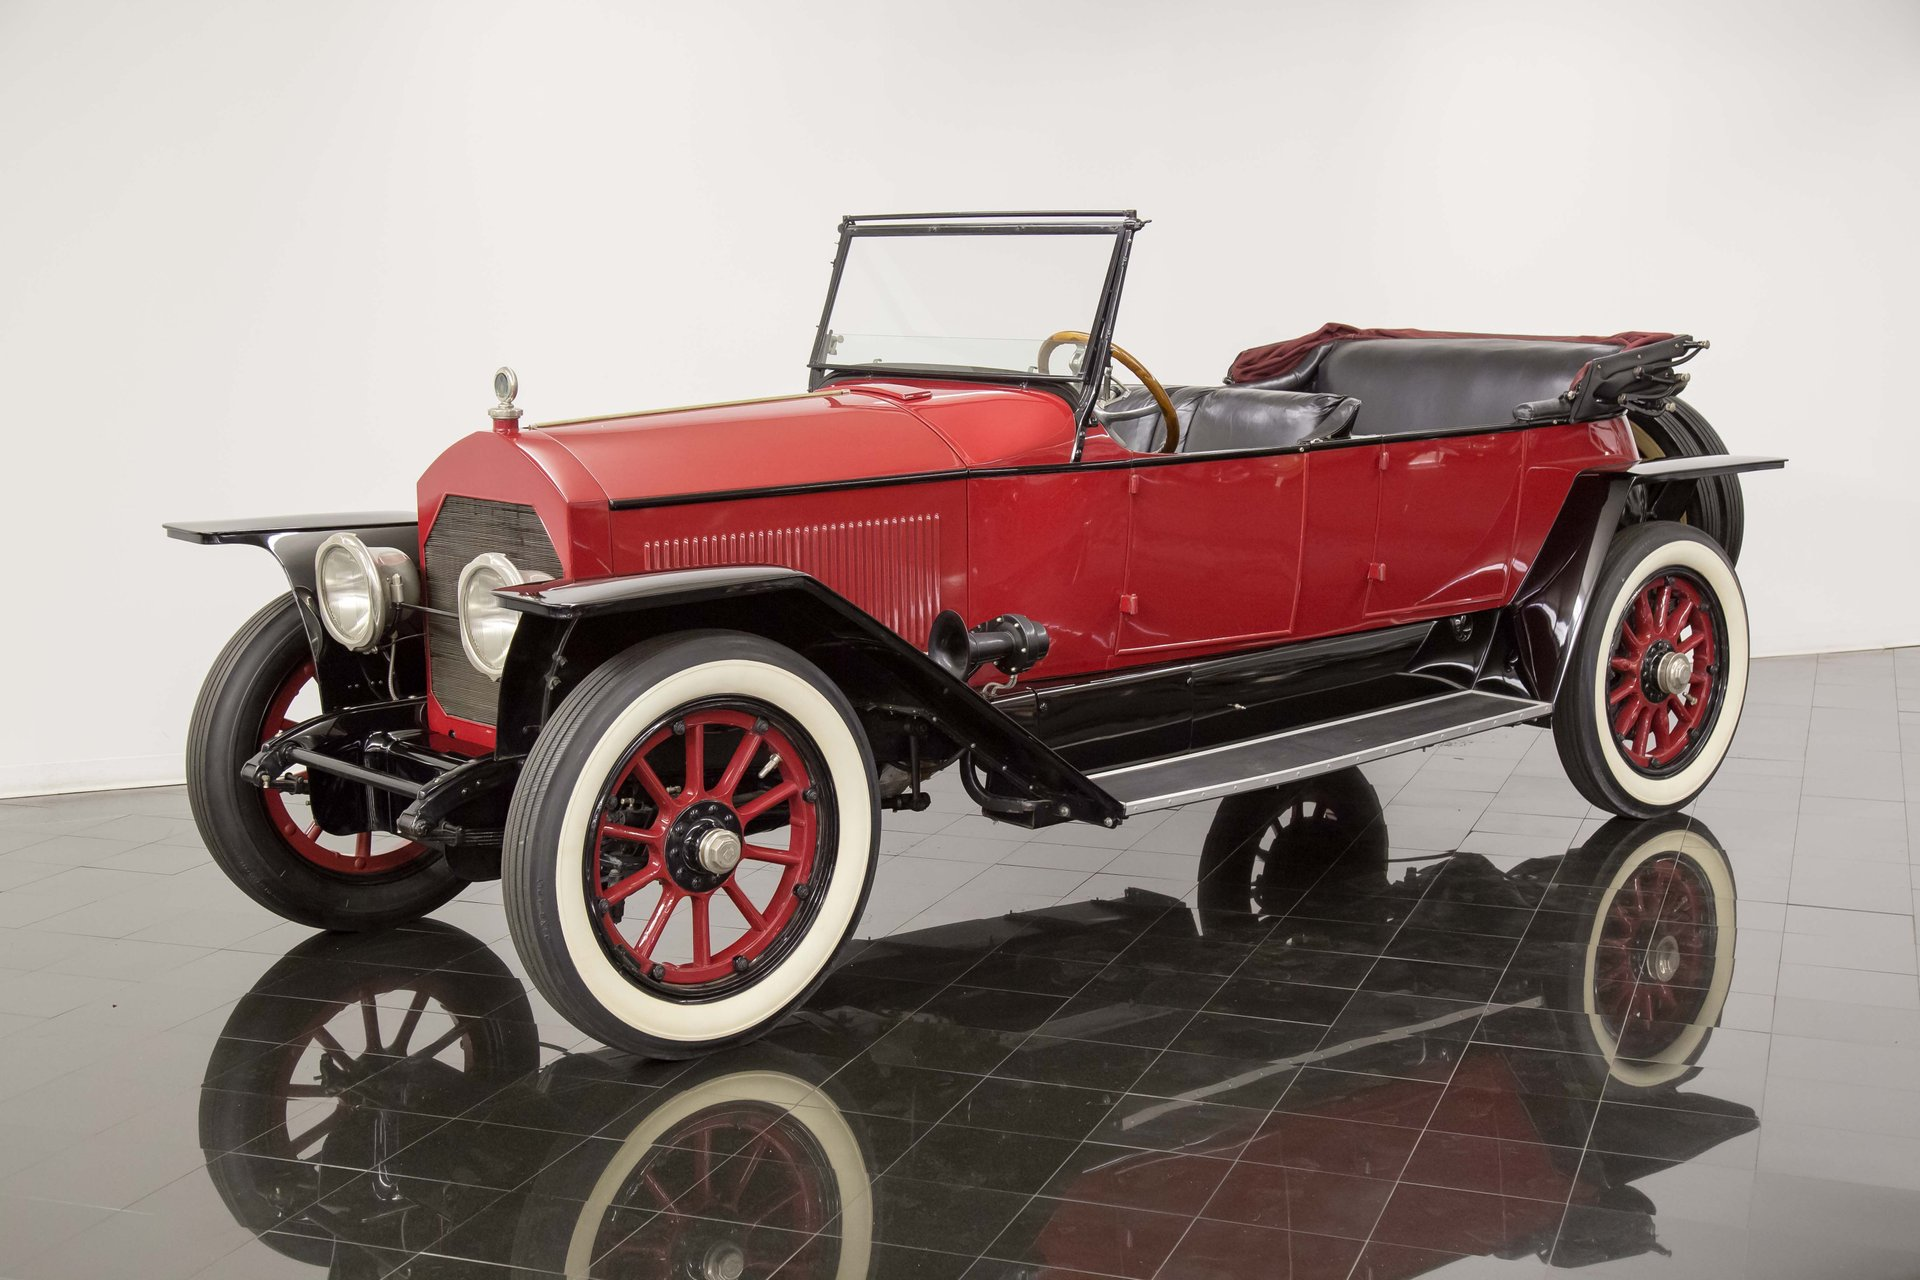 1919 cadillac model 57 touring parade car by brewster